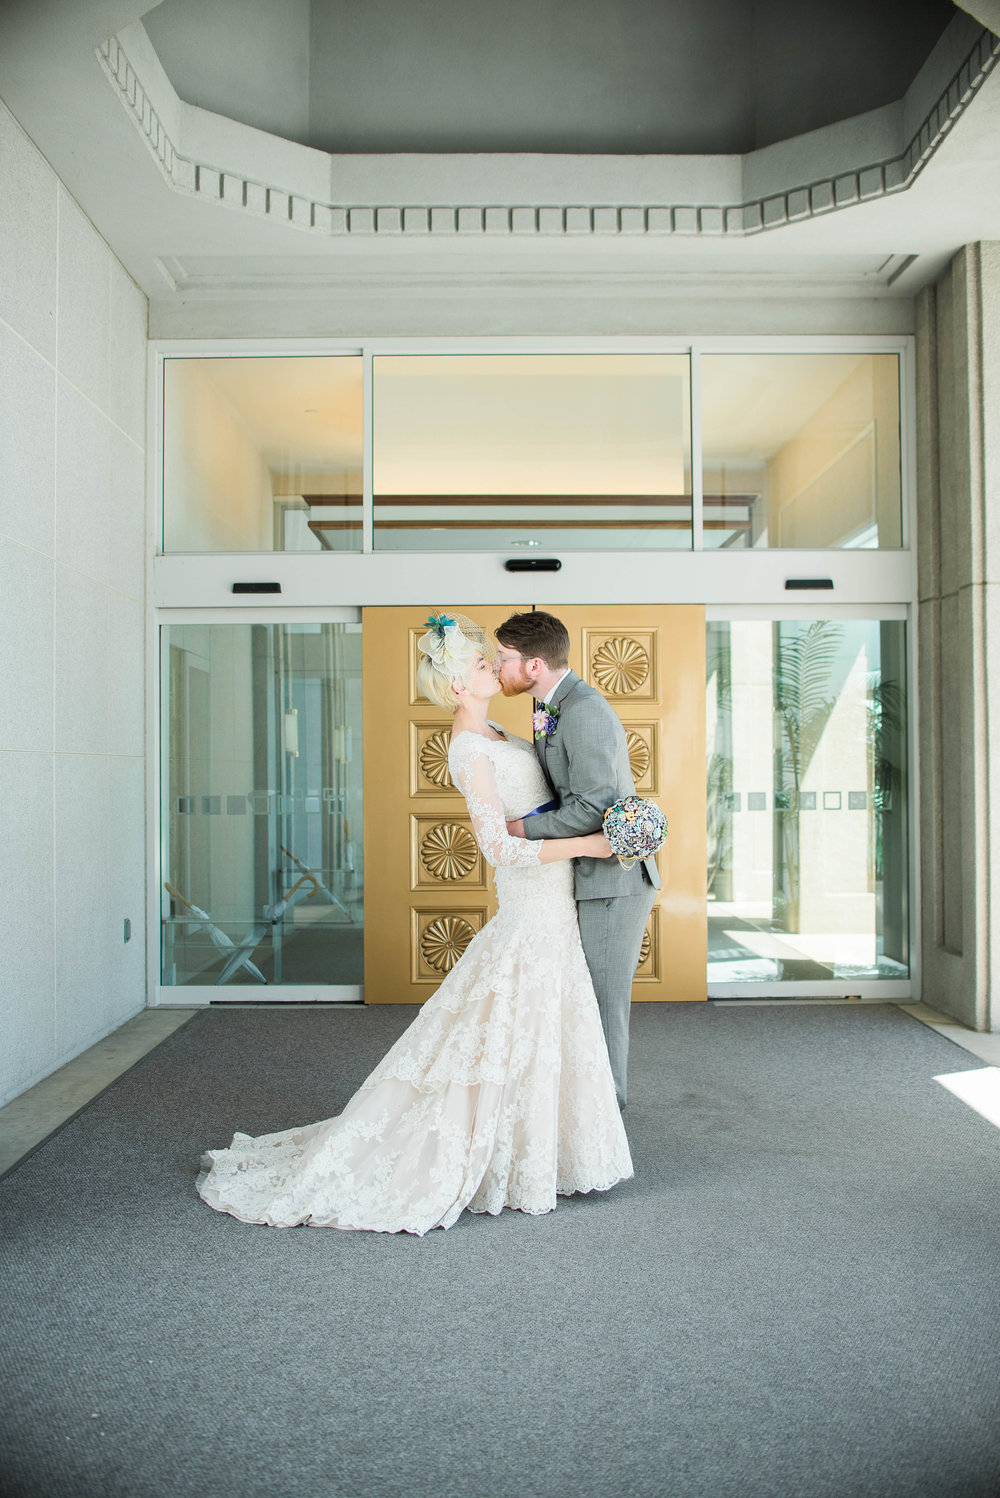 K+M-Wedding-DaySadie_Banks_Photography-612.jpg